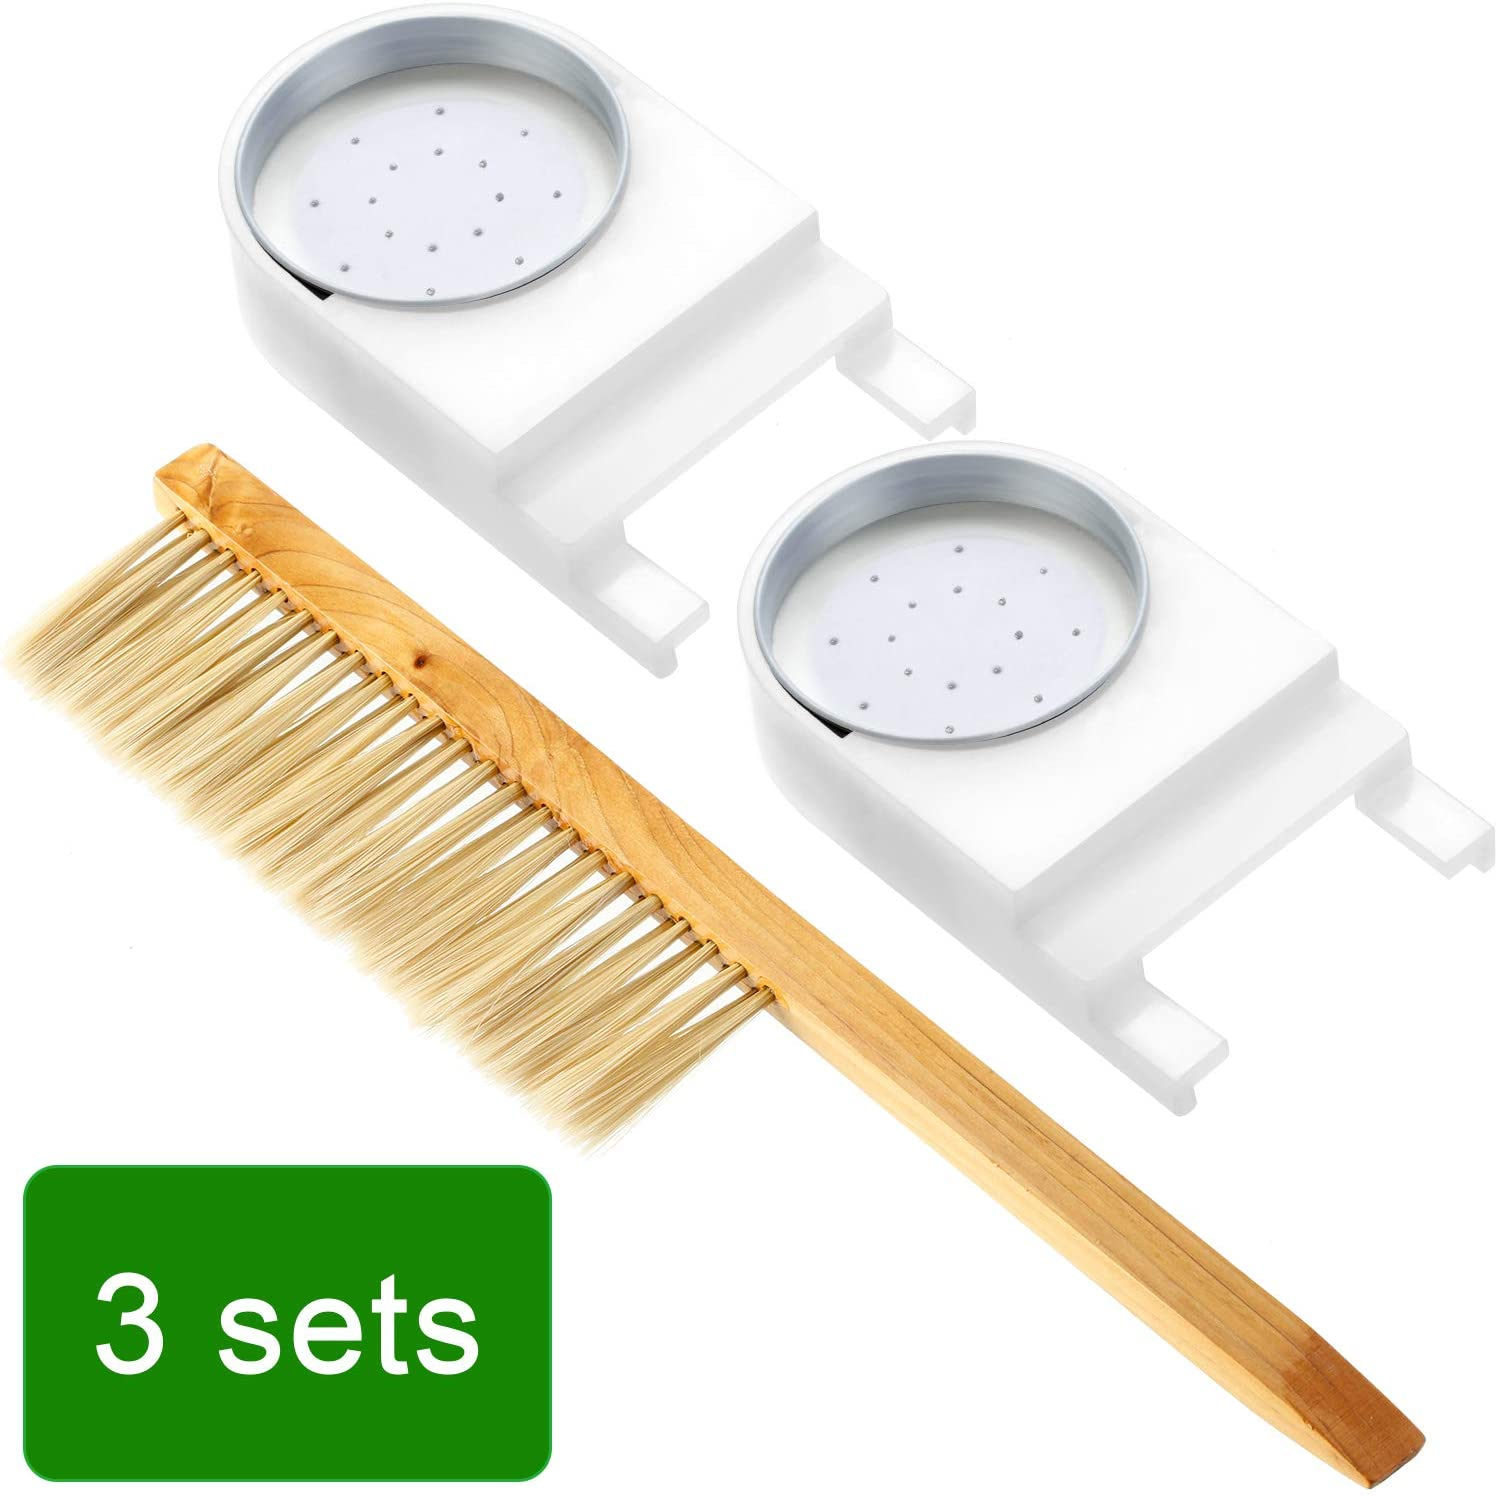 Entrance Feeder Entrance Bee Feeder with Beehive Brush Tool for Bee Hives Fits Most Small Mouth Canning Jars Sugar Syrup for Bees Beekeeper Tool, 3 Pieces